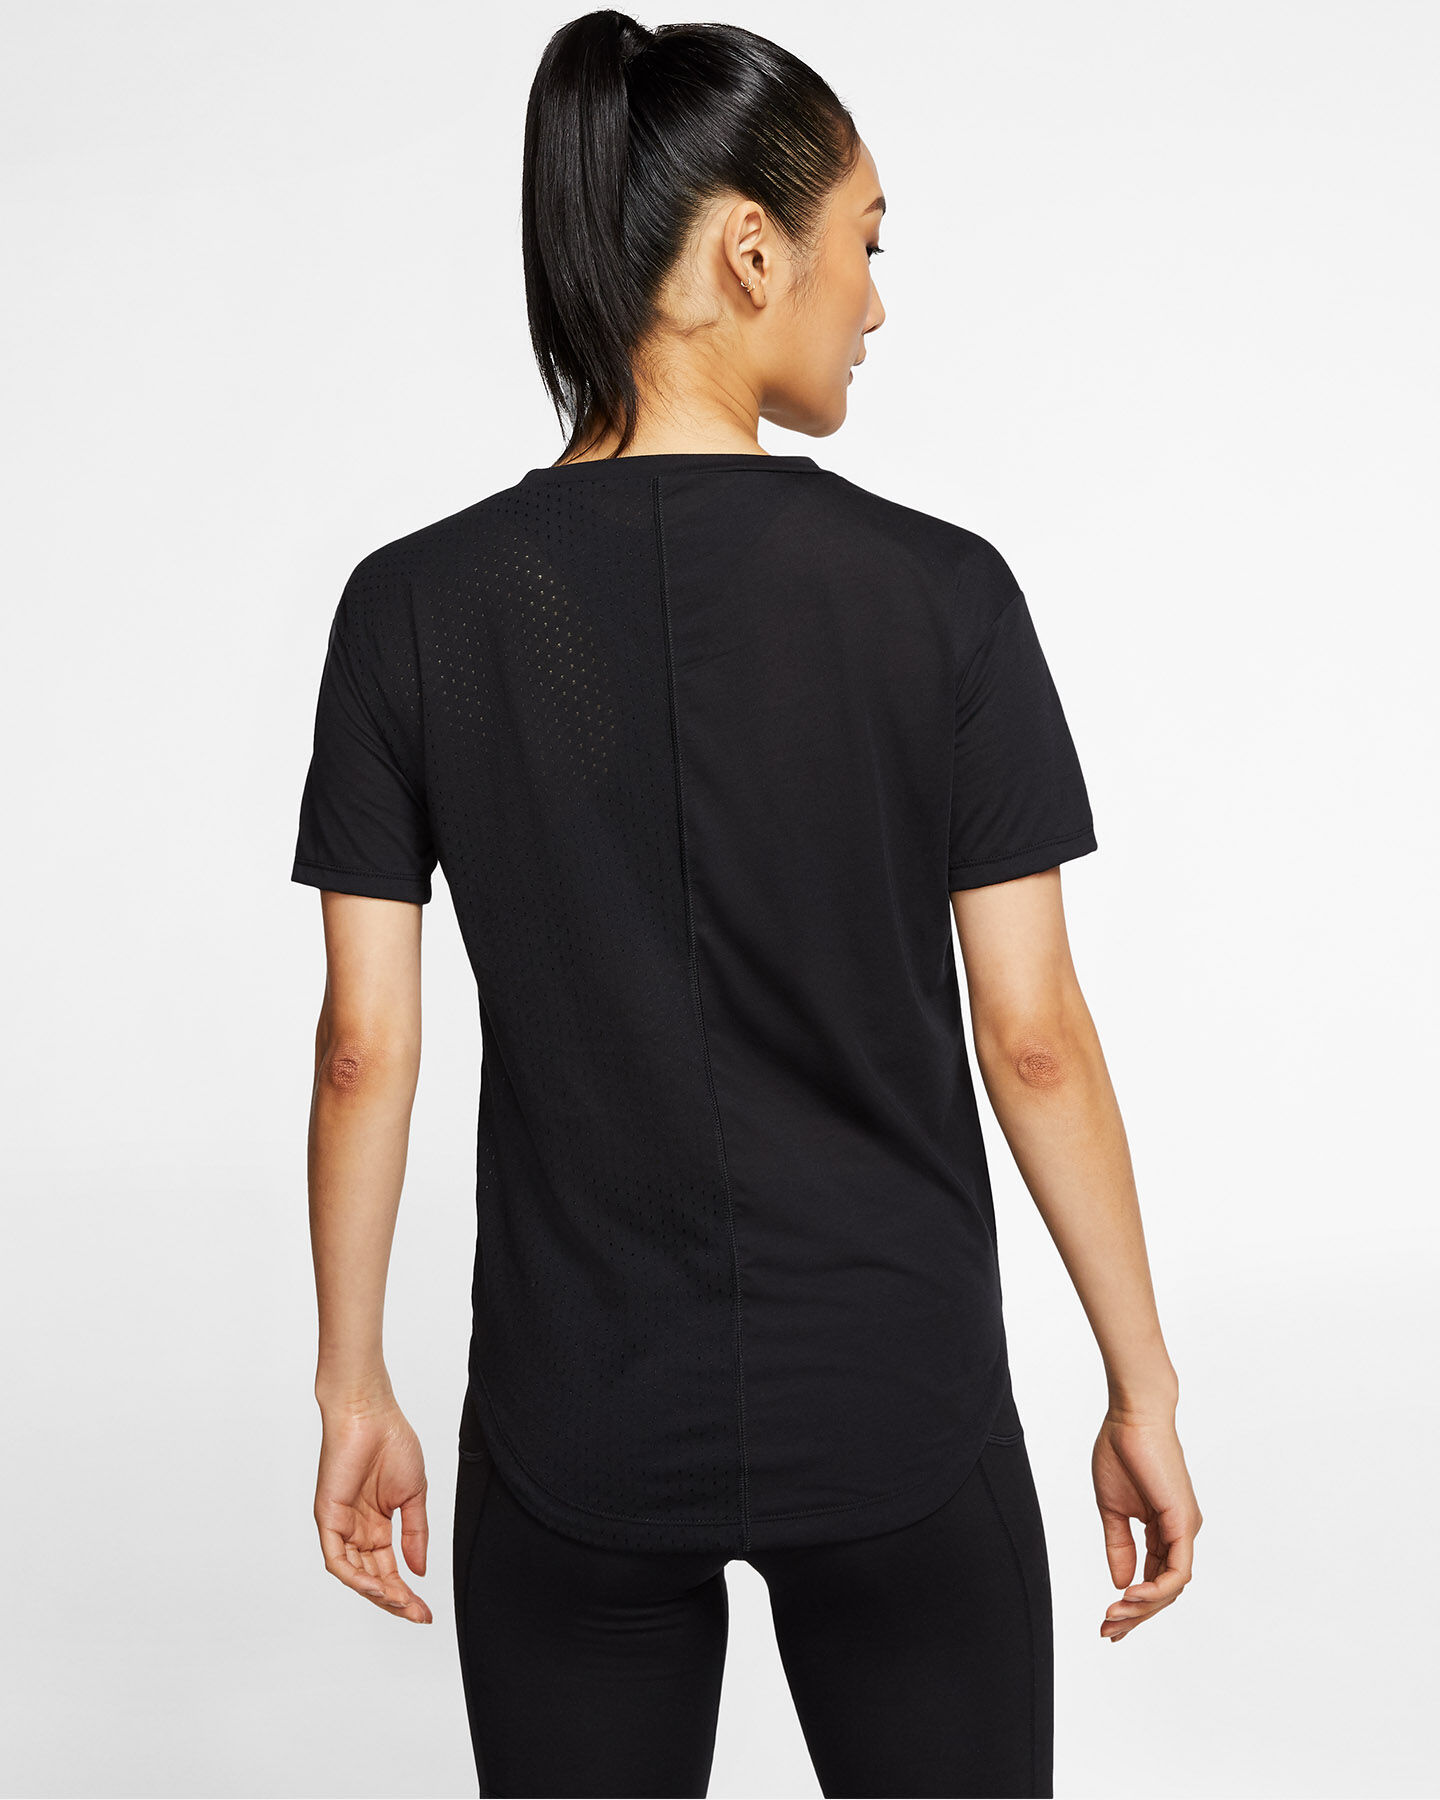 T-Shirt running NIKE ICON CLASH W S5164929 scatto 3